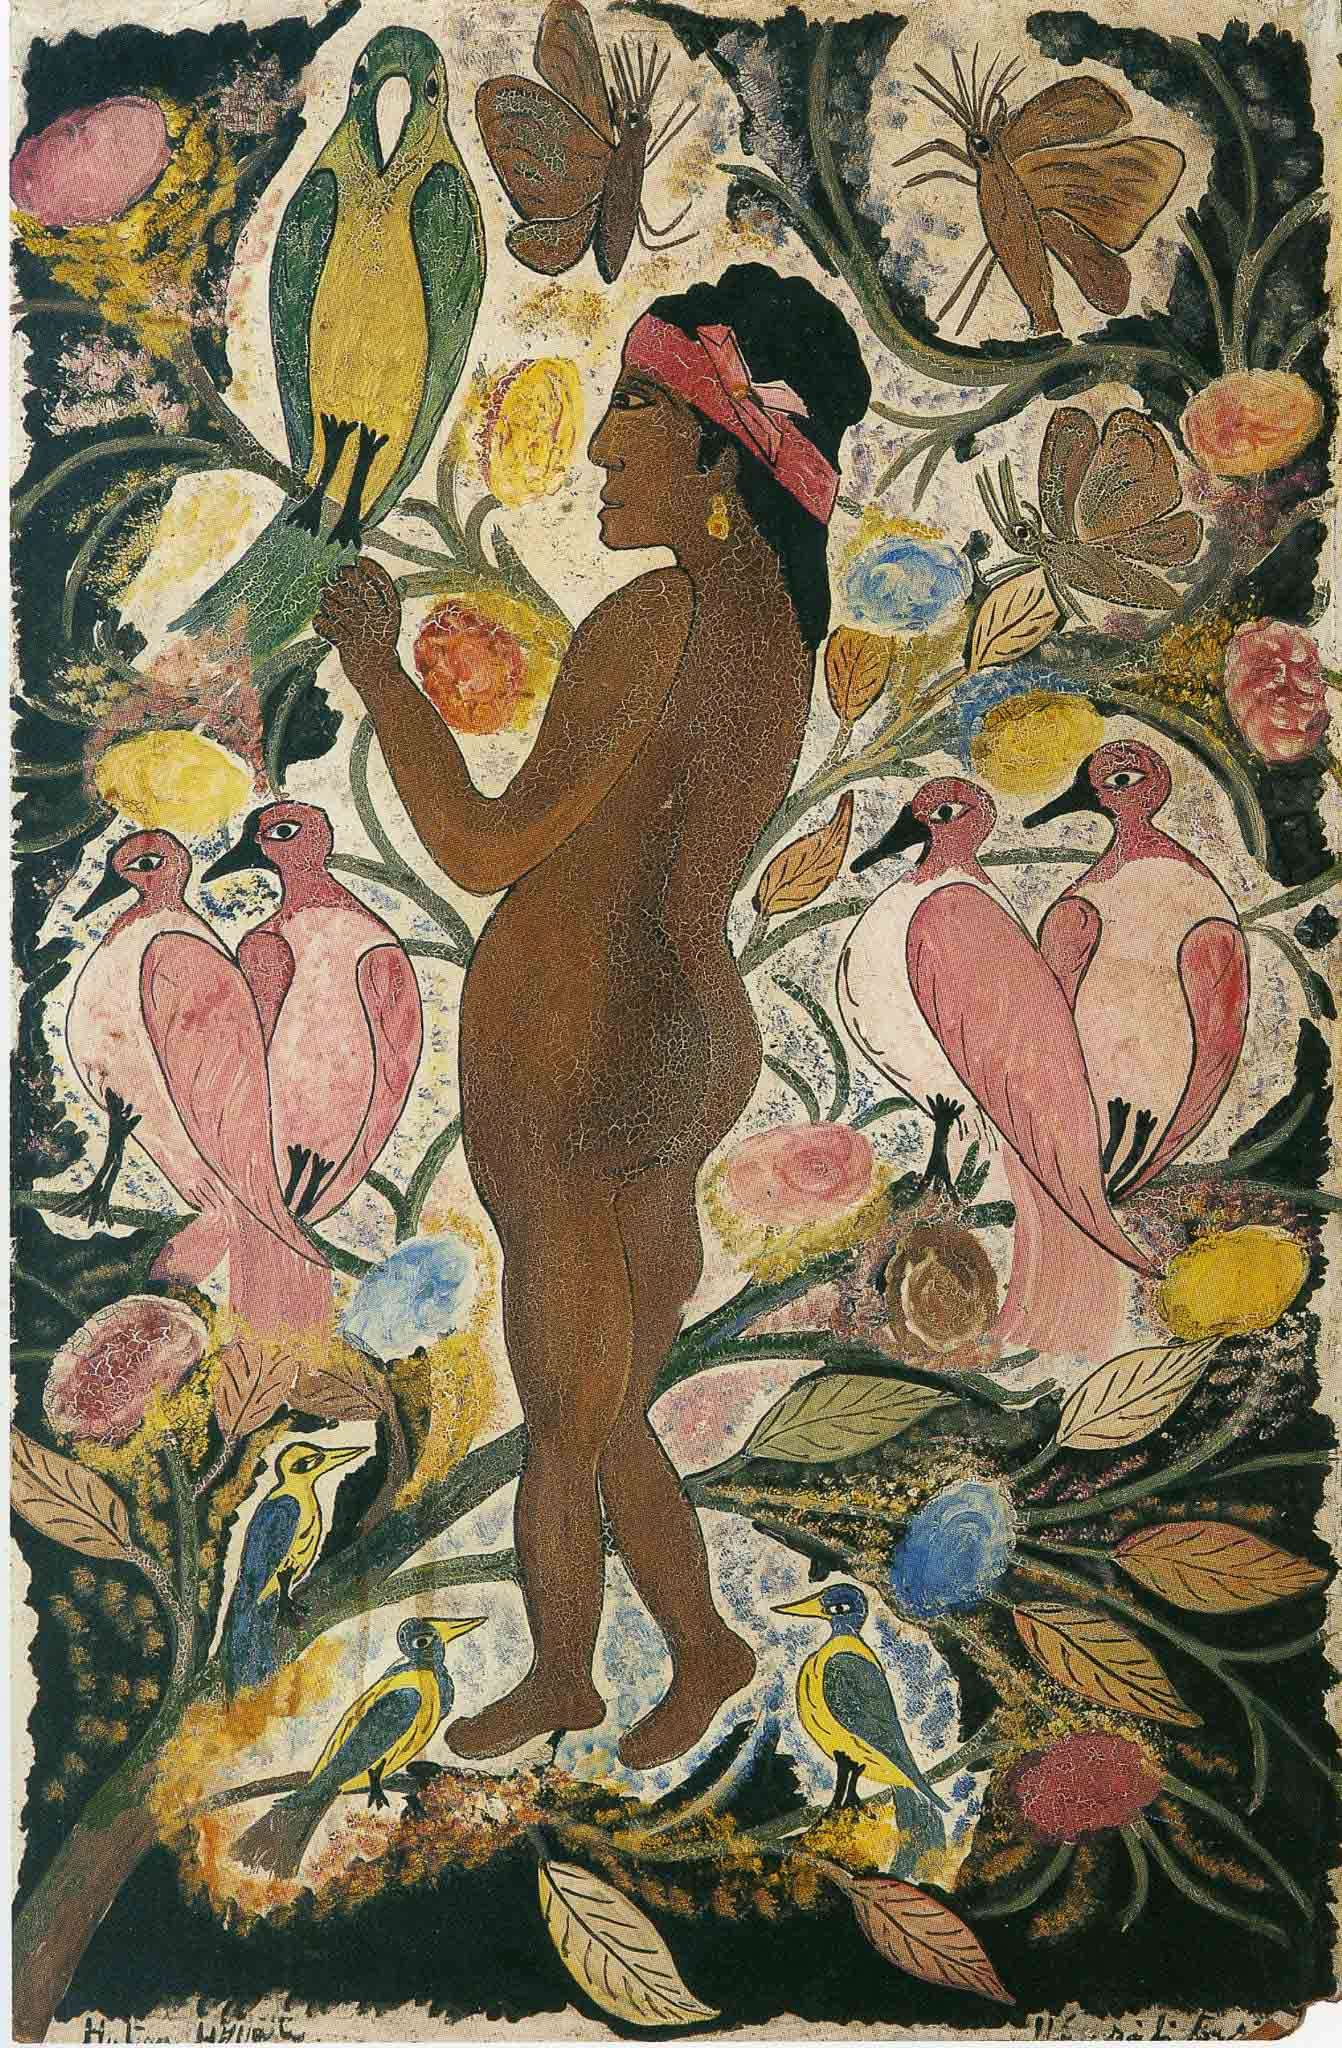 Woman with Flowers and Birds, 1948